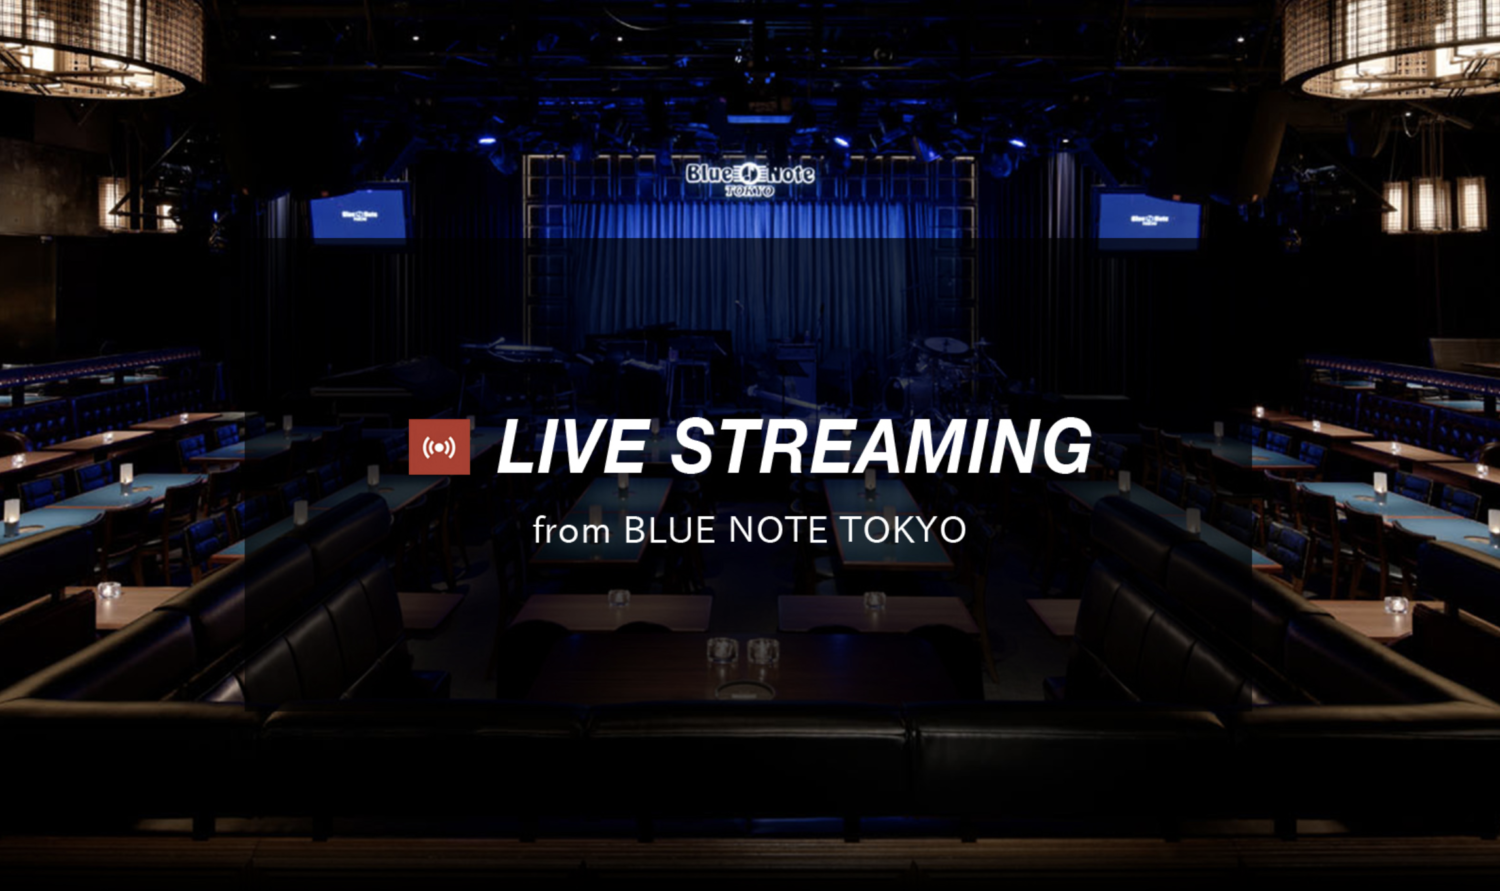 「LIVE STREAMING from BLUE NOTE TOKYO」